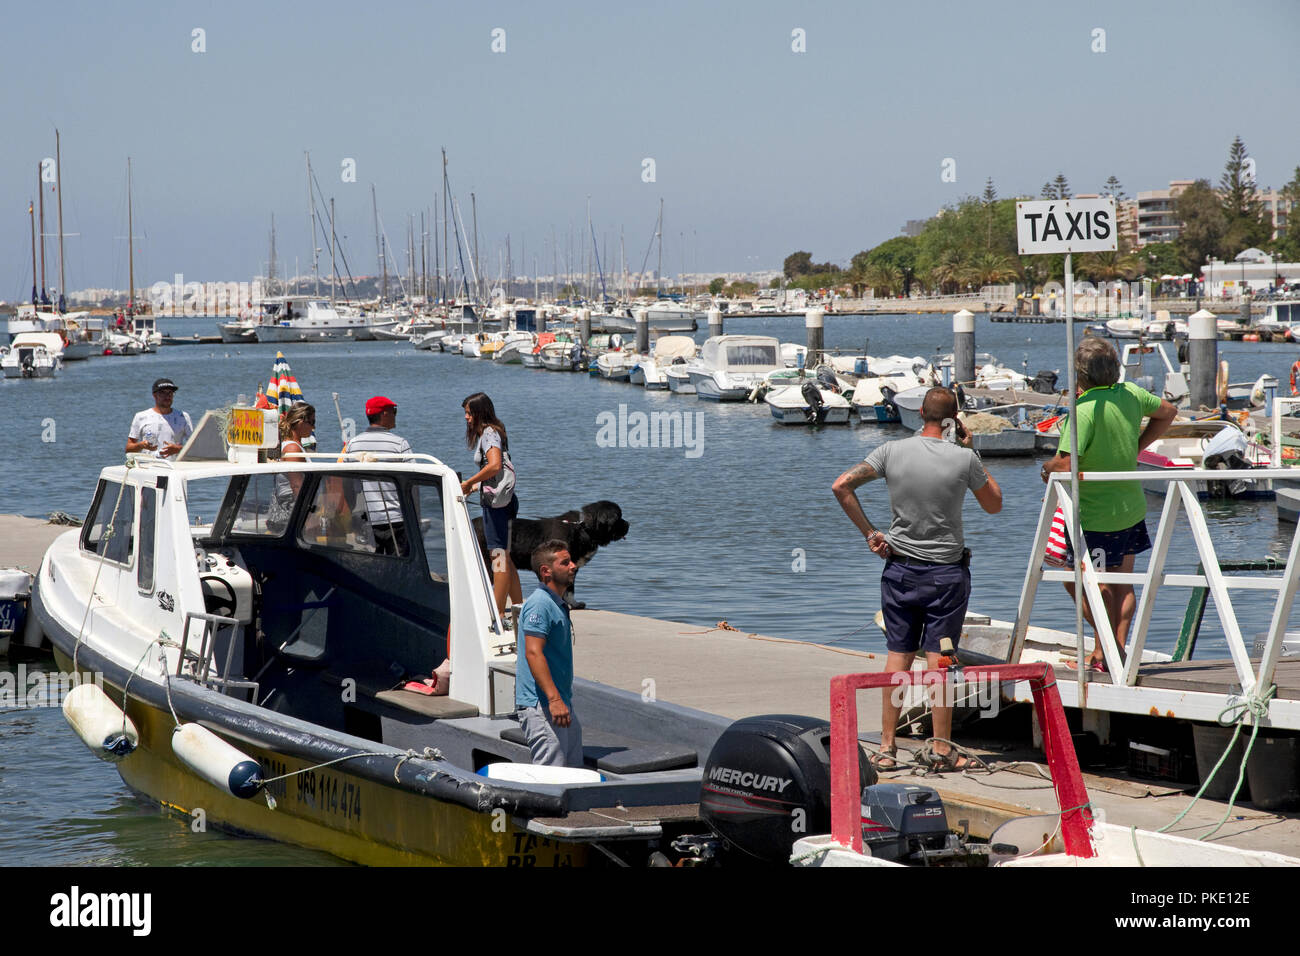 Water taxis to beaches and islands of Ria Formosa. Harbour, Olhao, Algarve, Portugal - Stock Image